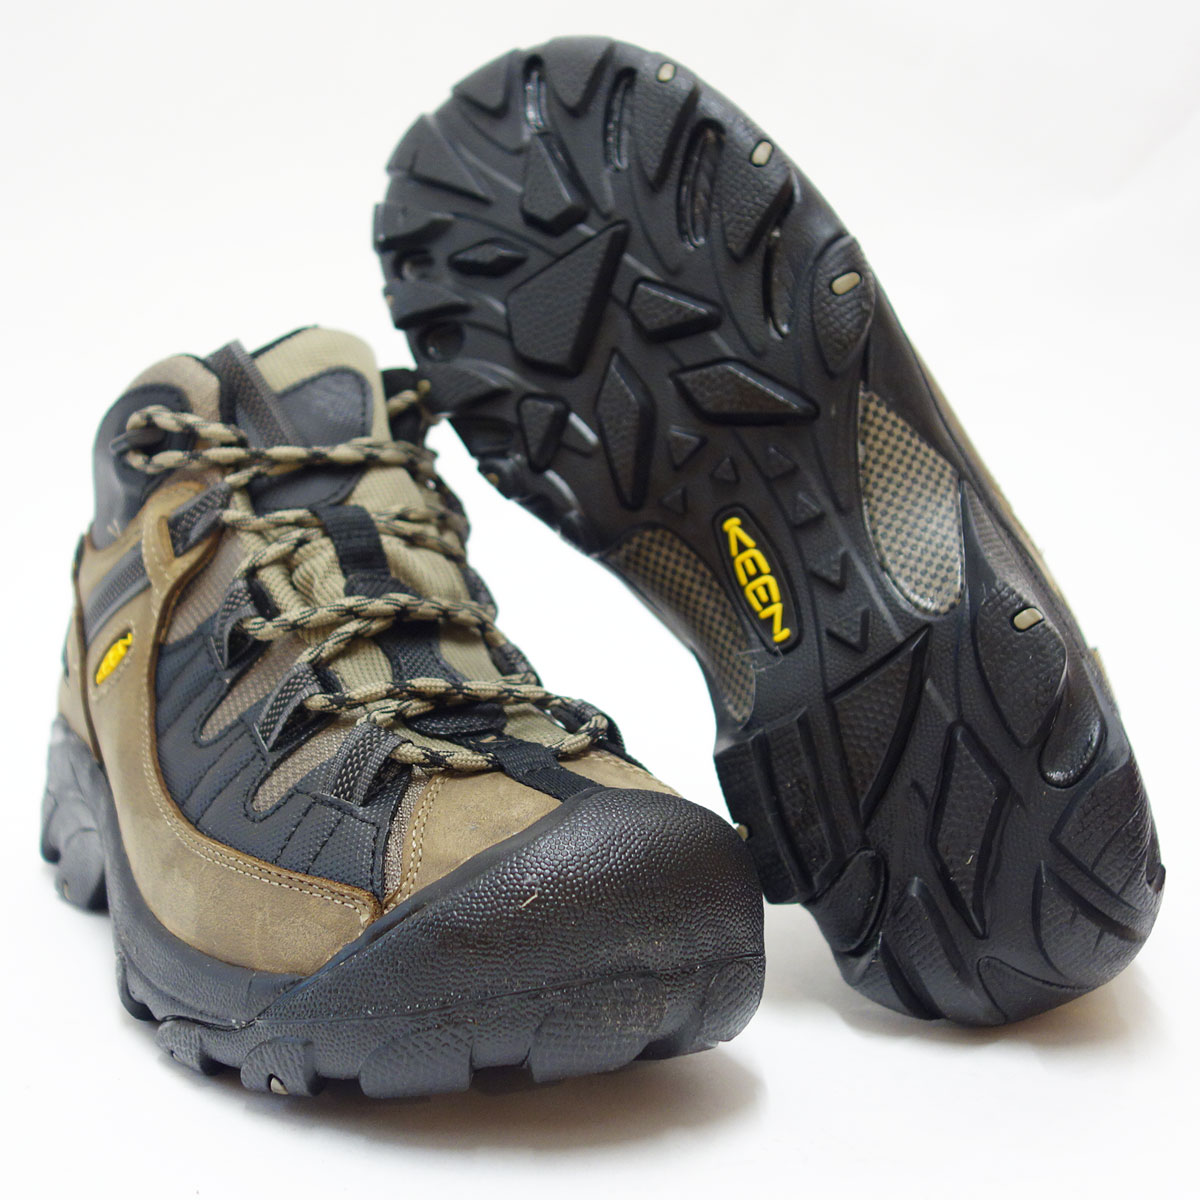 TARGHEE II Mid TAC targets mid tack 1012864 (men's) color:Brindle/Black lightweight and waterproof hybrid hiking shoes